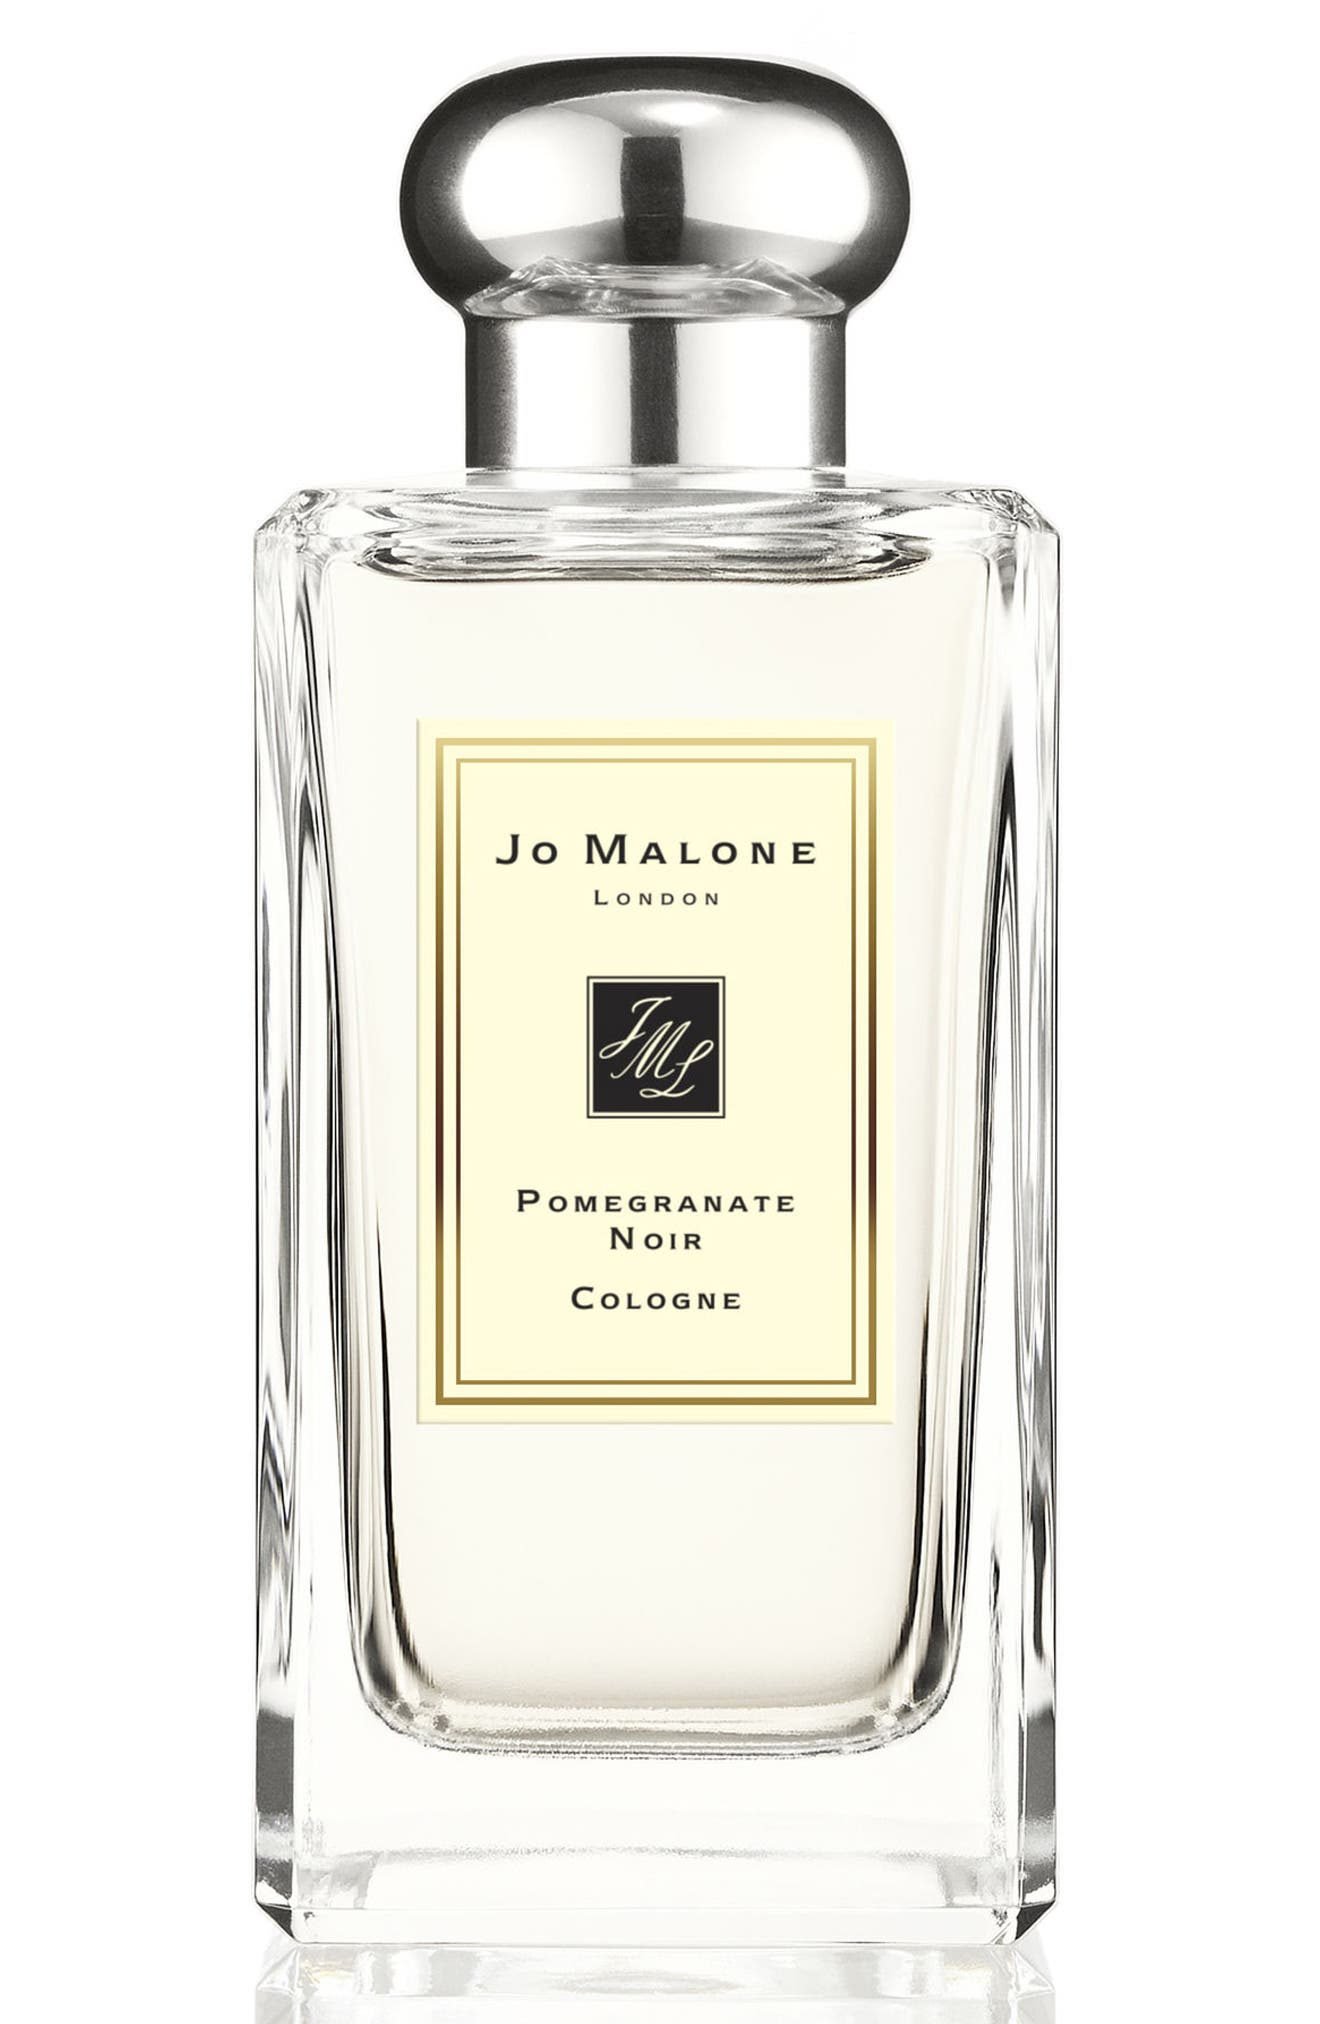 Jo Malone London™ Pomegranate Noir Cologne (3.4 oz.)